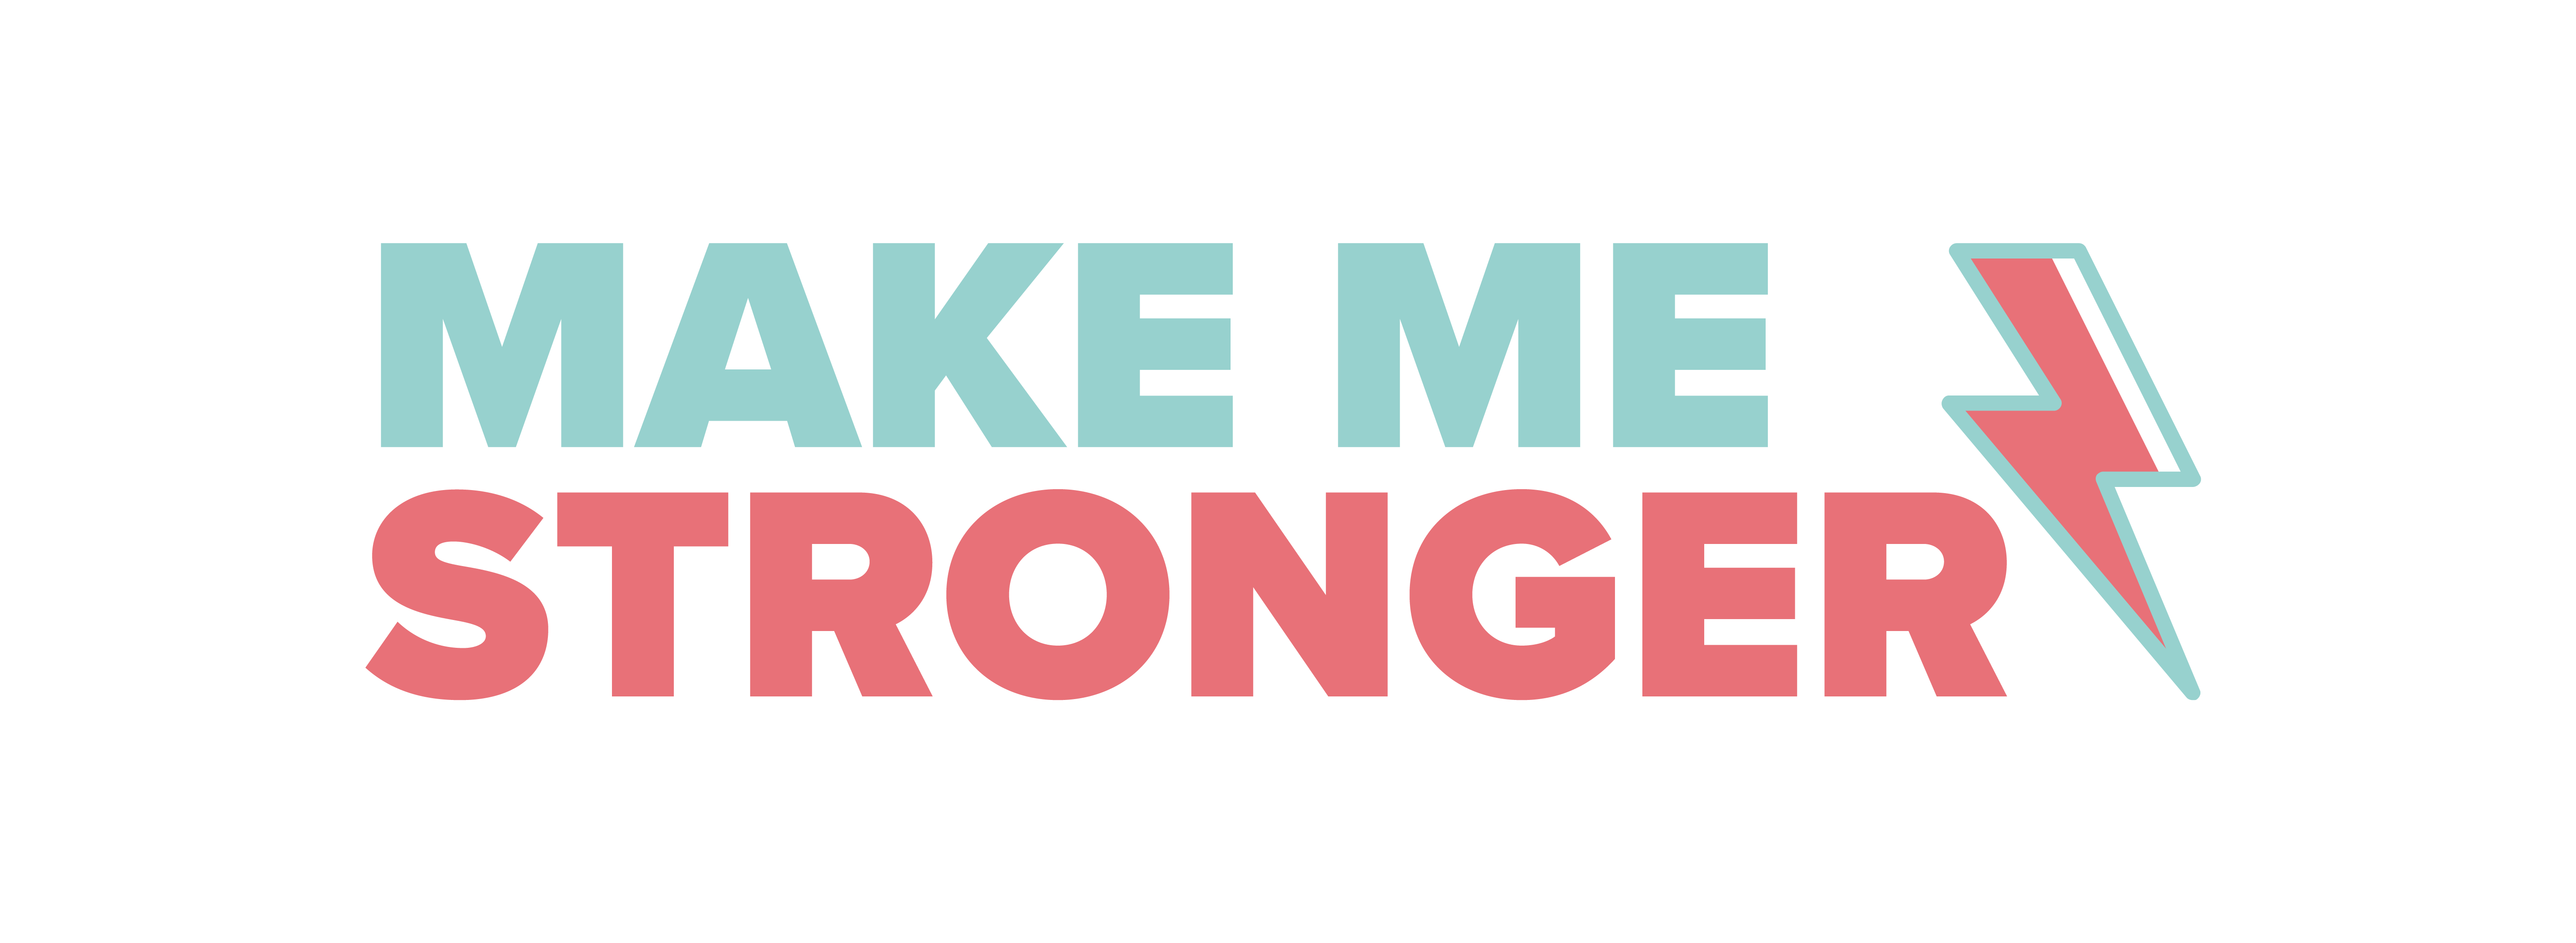 Make Me Stronger